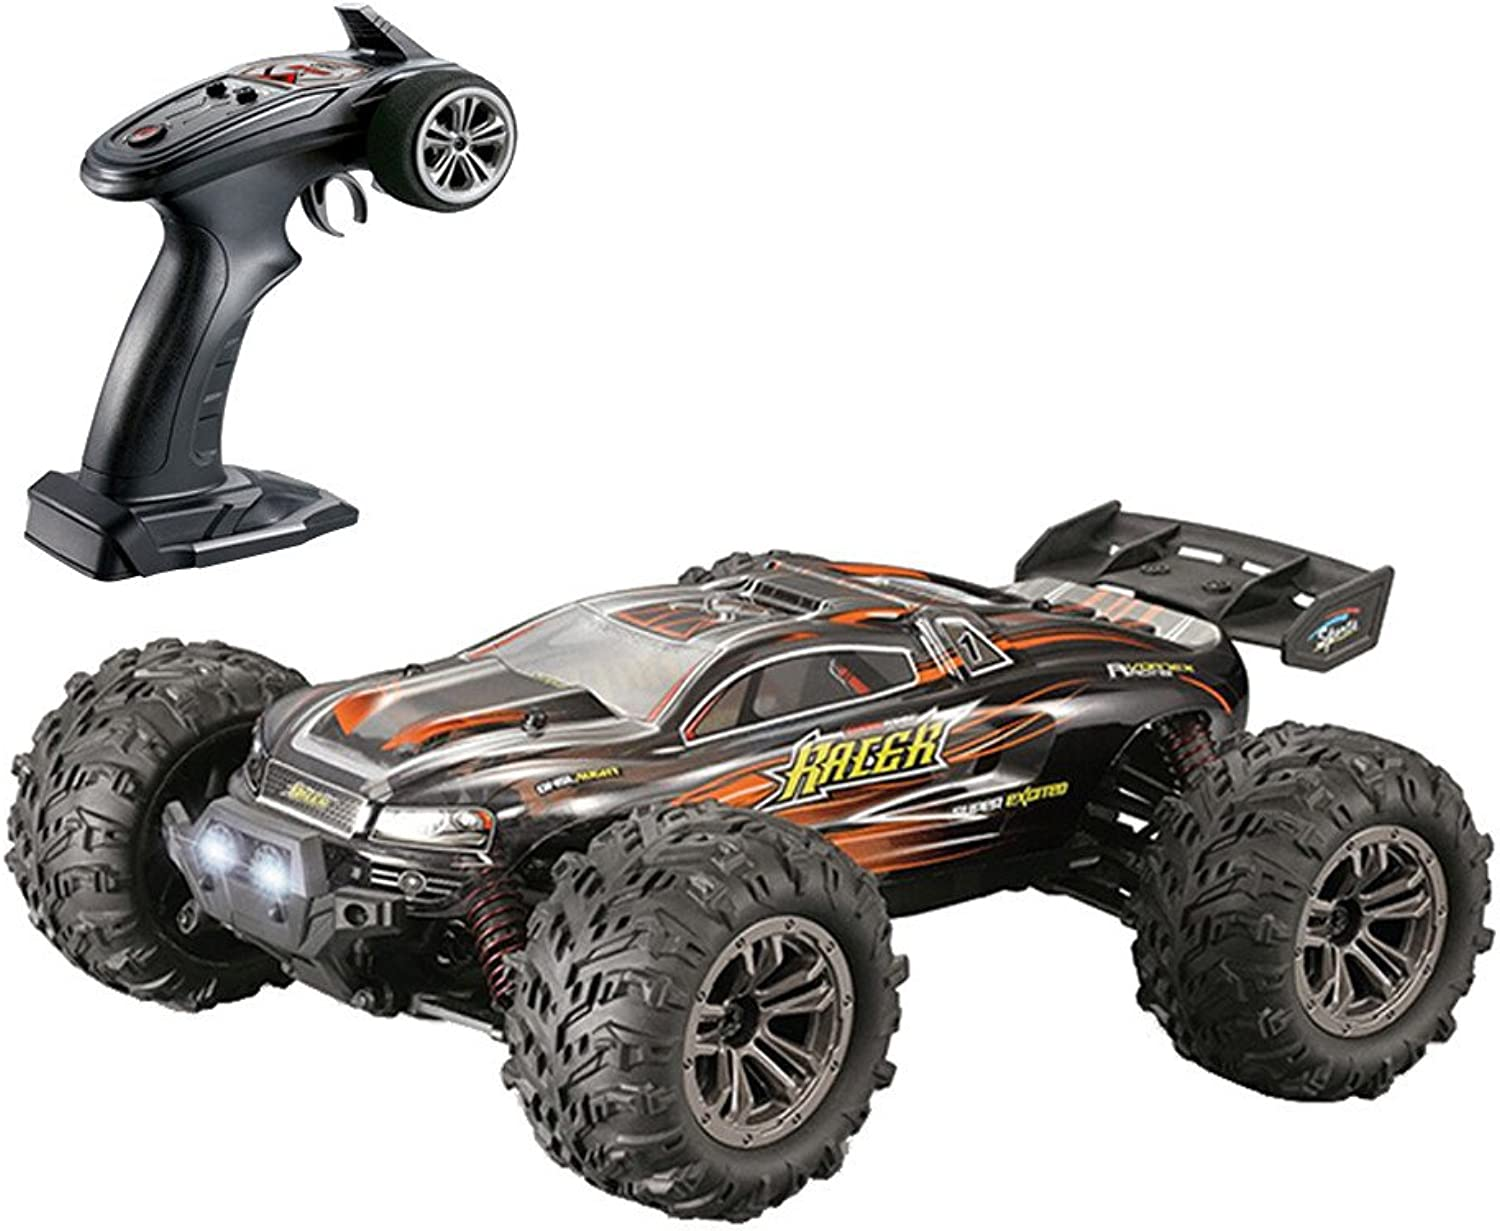 36+MPH 1 16 RC Car 2.4Ghz 4WD High Speed Remote Controlled IPX4 Waterproof Truck (yellow)